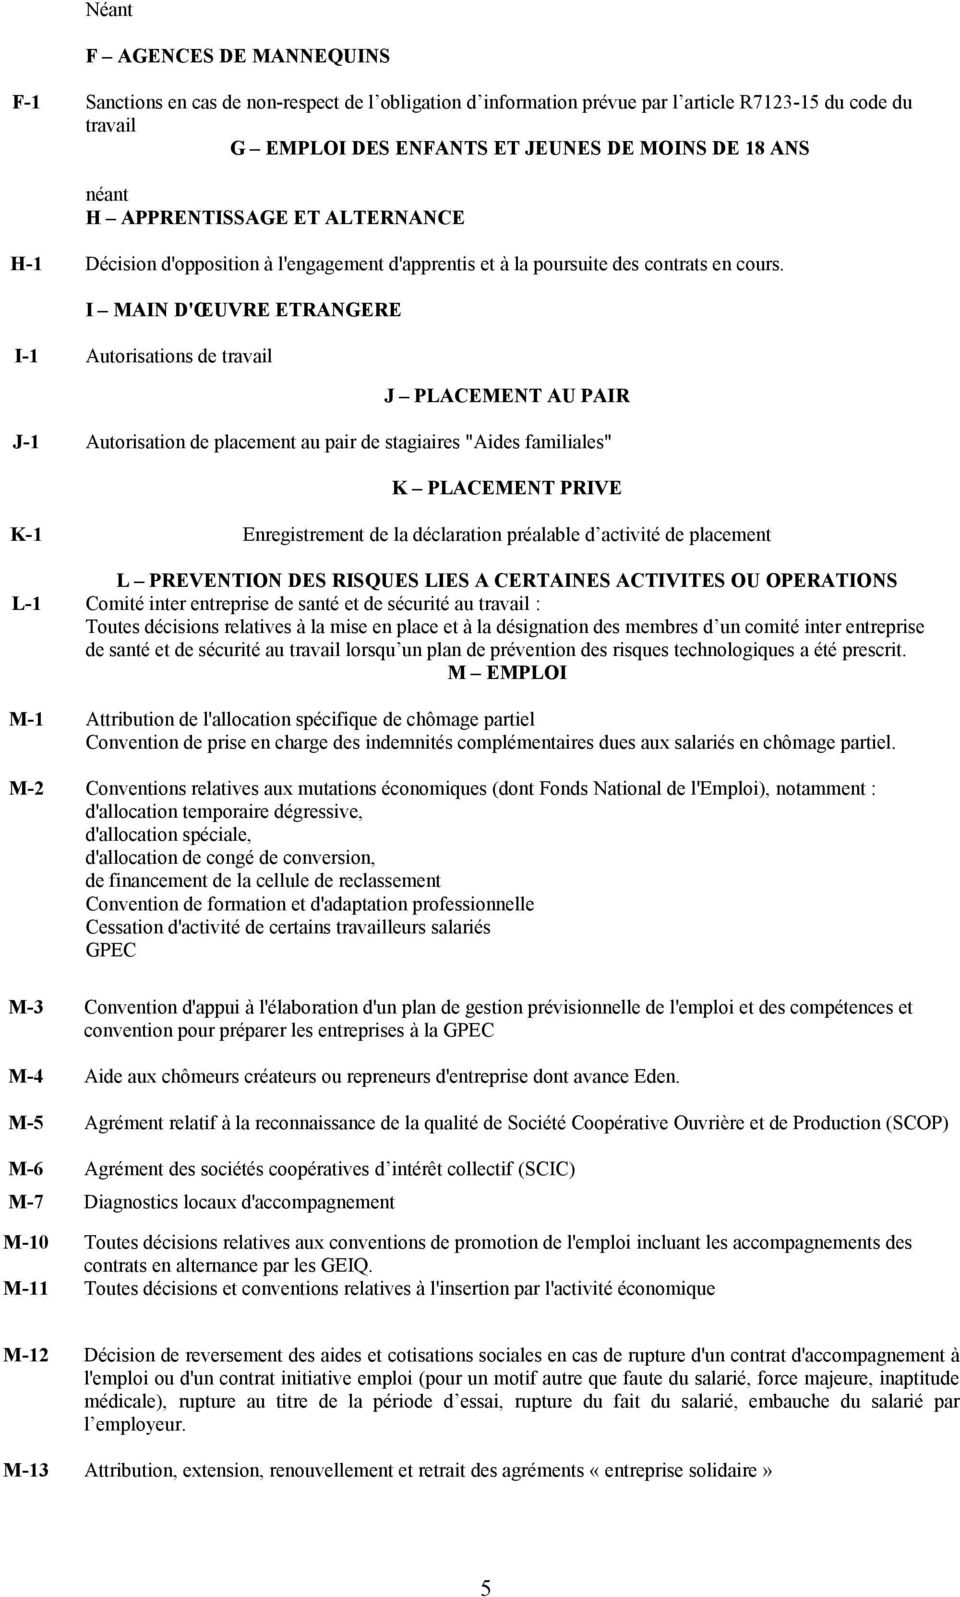 "I MAIN D'ŒUVRE ETRANGERE I-1 Autorisations de travail J PLACEMENT AU PAIR J-1 Autorisation de placement au pair de stagiaires ""Aides familiales"" K PLACEMENT PRIVE K-1 Enregistrement de la déclaration"